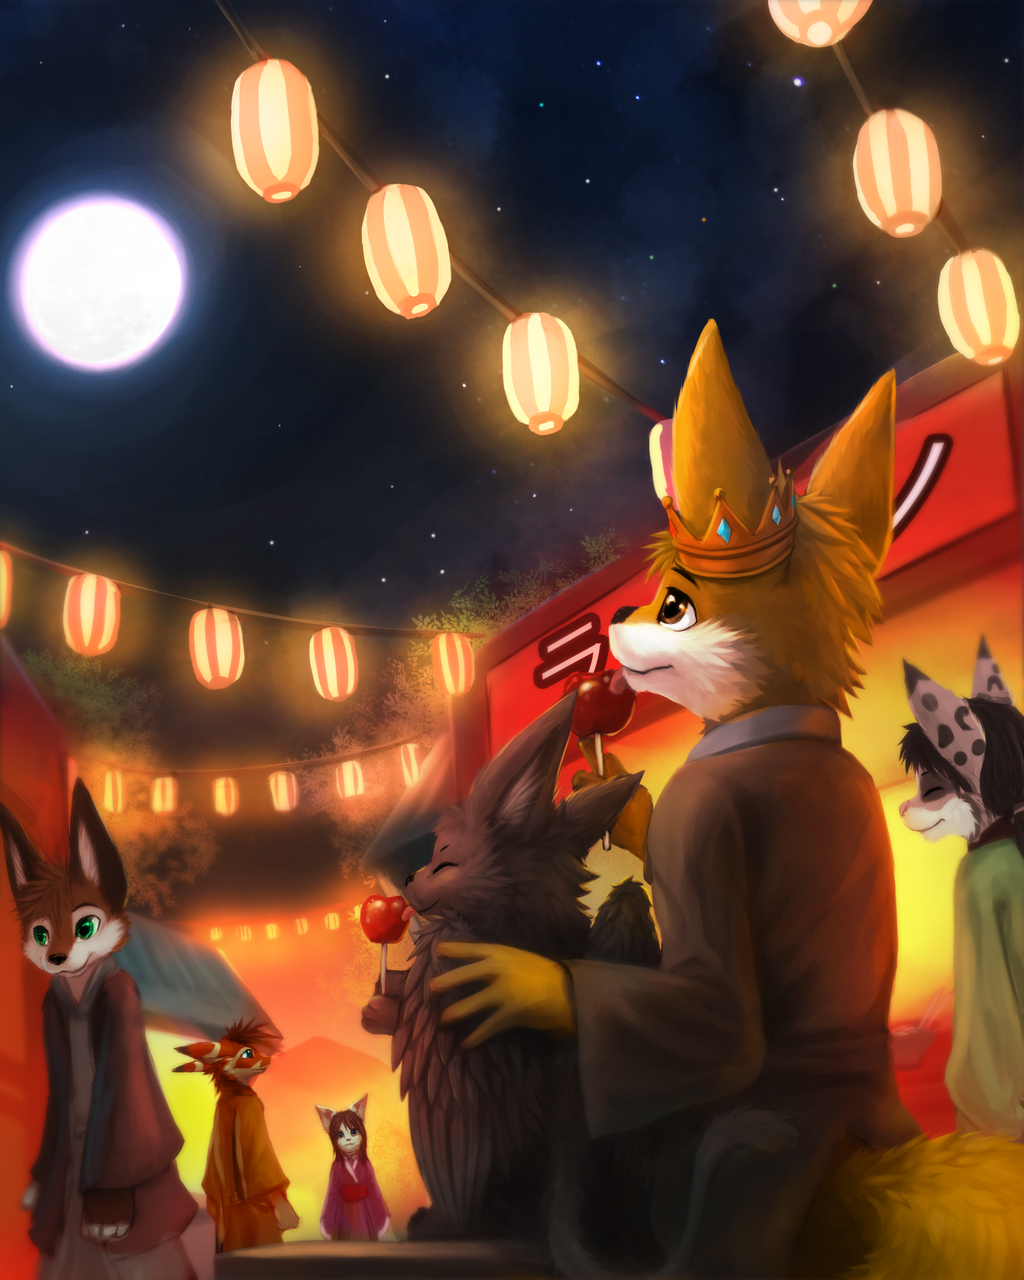 [Commision] We love candies by thanshuhai